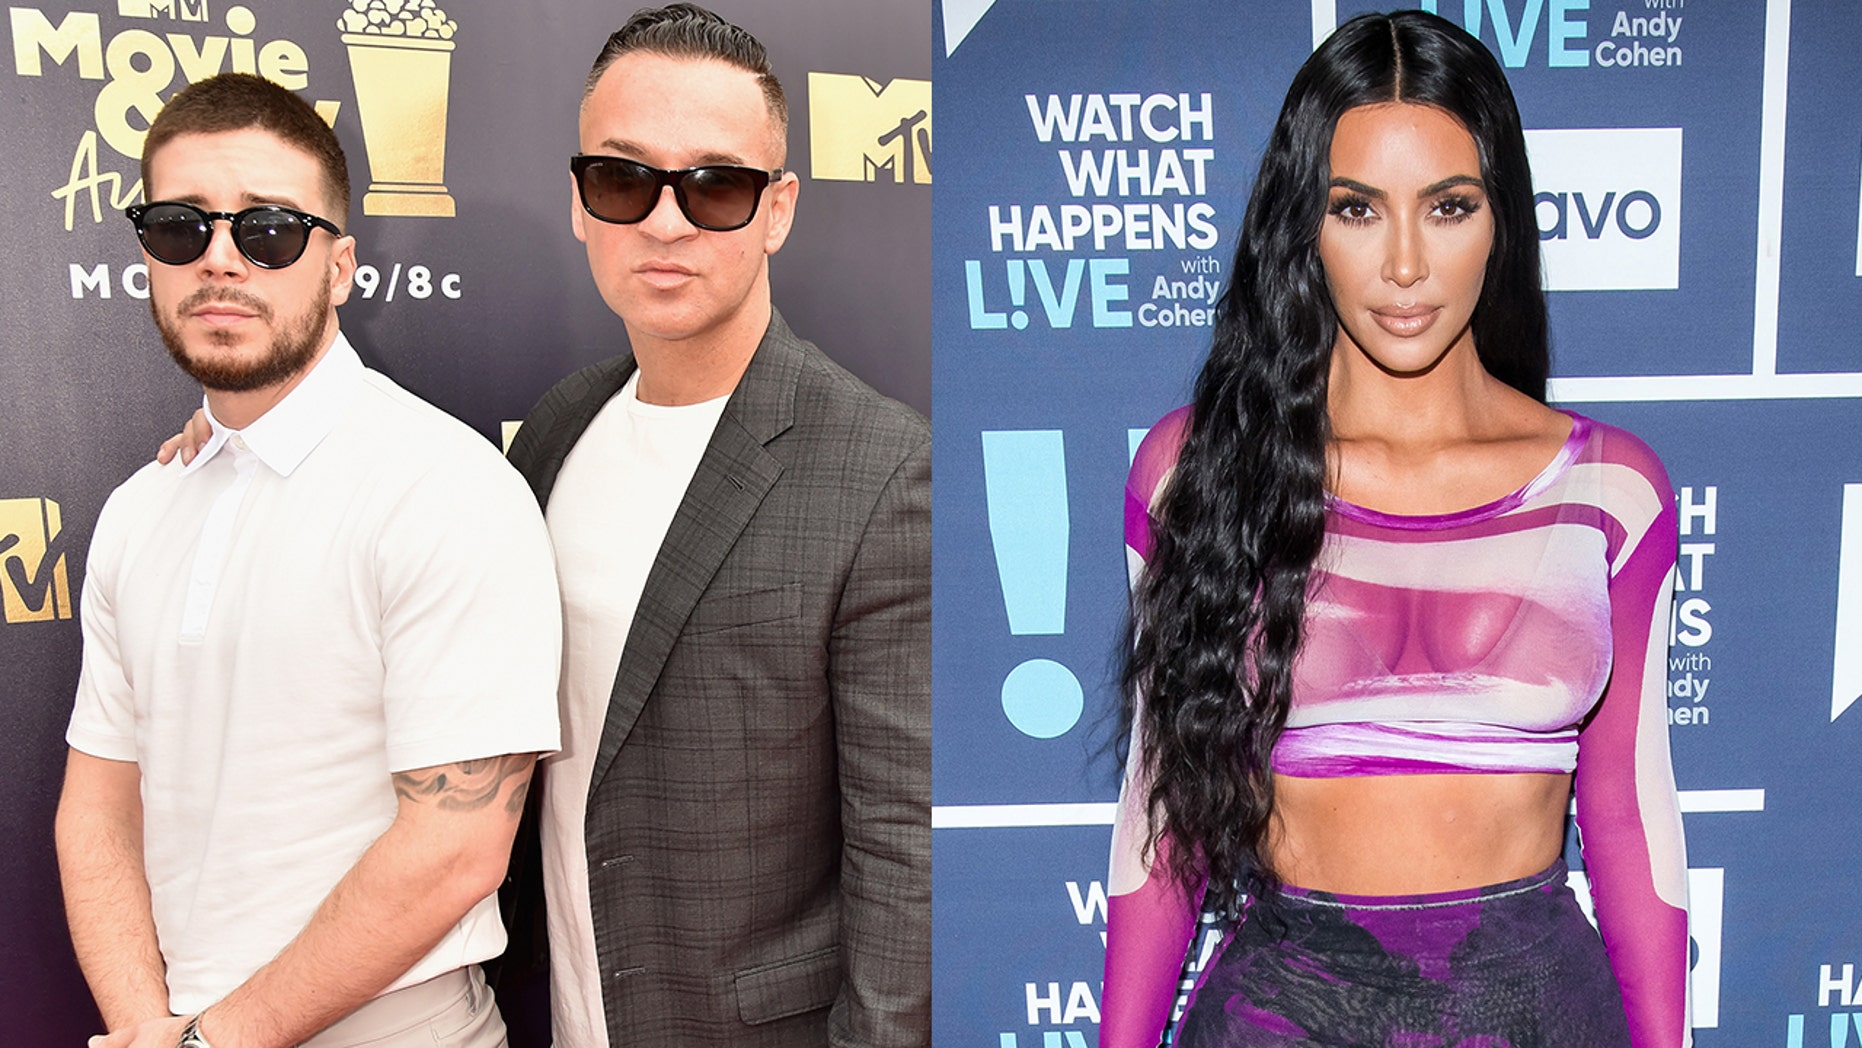 Vinny from 'Jersey Shore' asked if Kim Kardashian could help get Mike 'The Situation' out of jail.